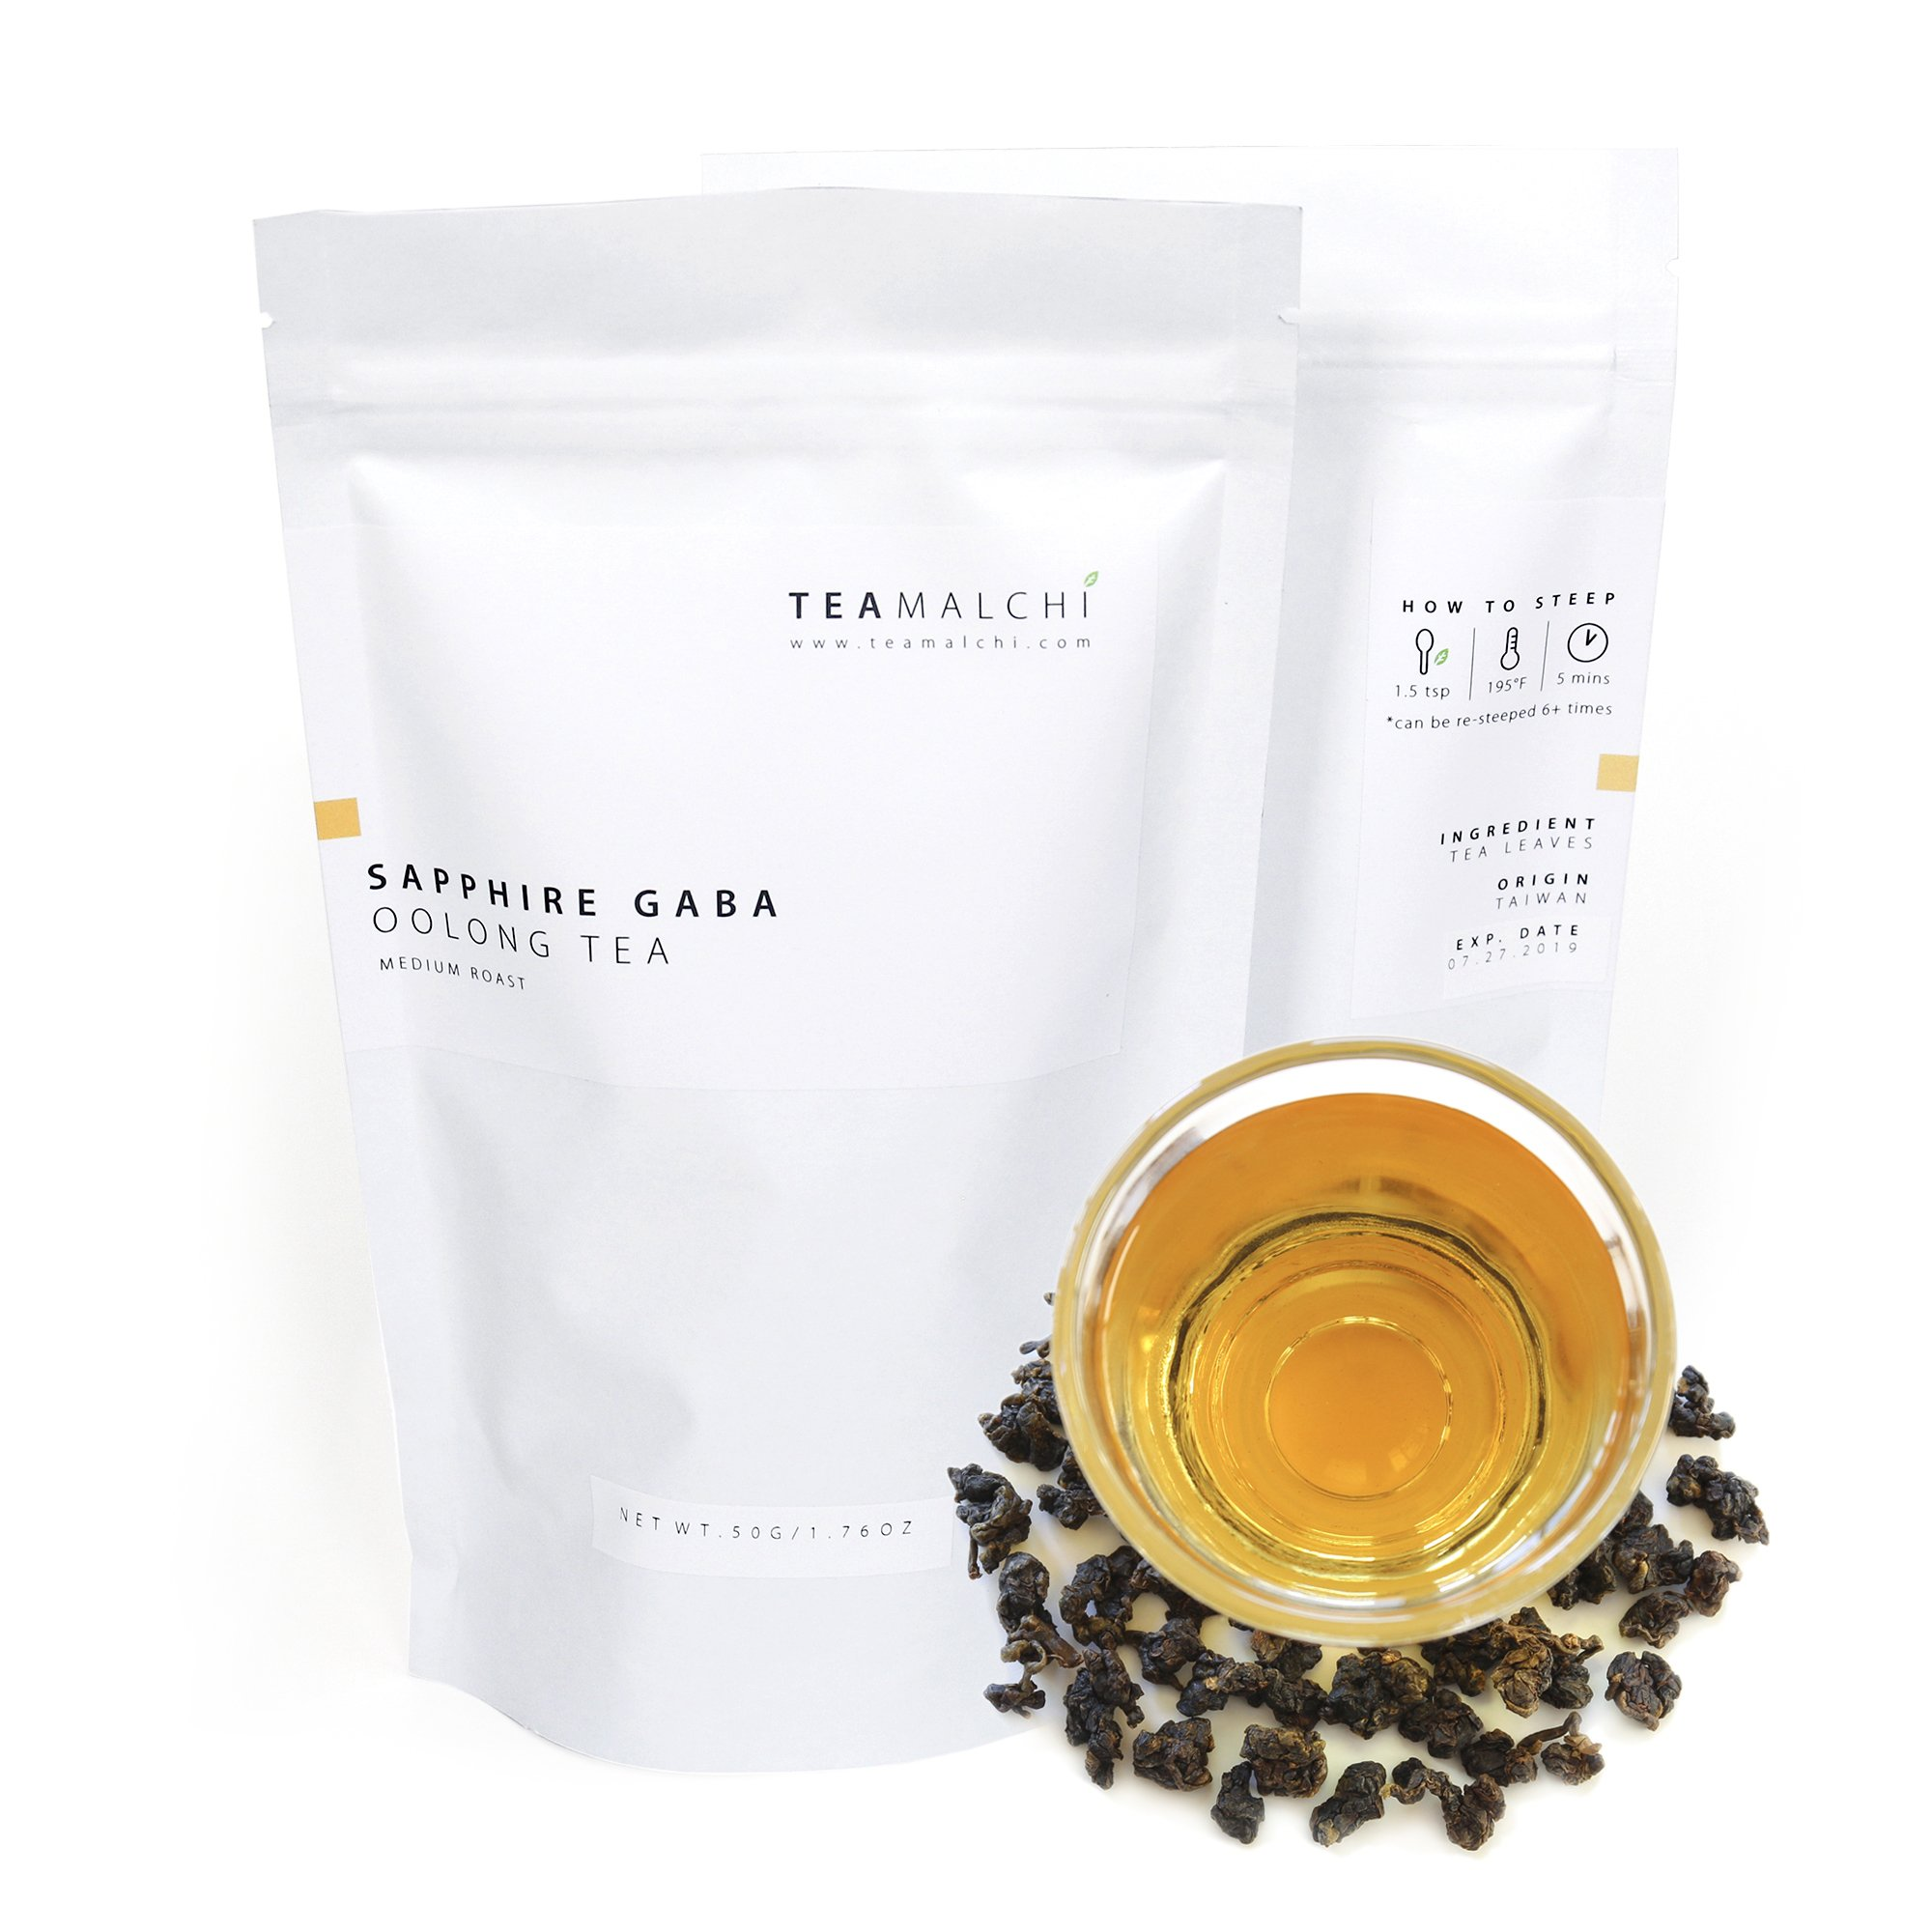 Natural Taiwan High Mountain Sapphire GABA Loose Leaf Oolong Tea, 50g/1.76 oz